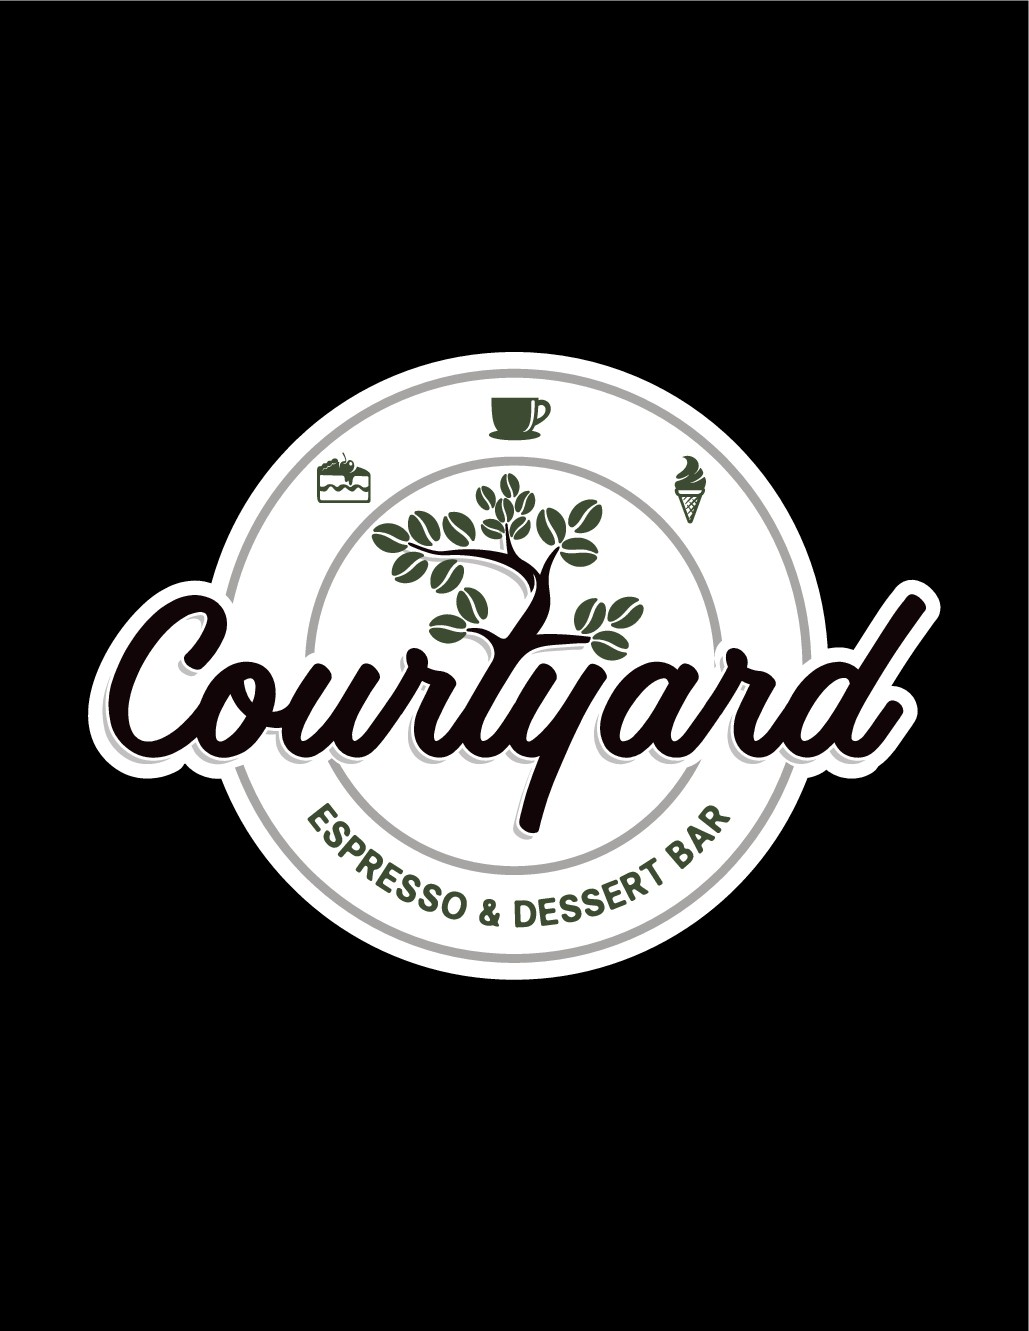 Logo to compliment our existing Cafe brand!